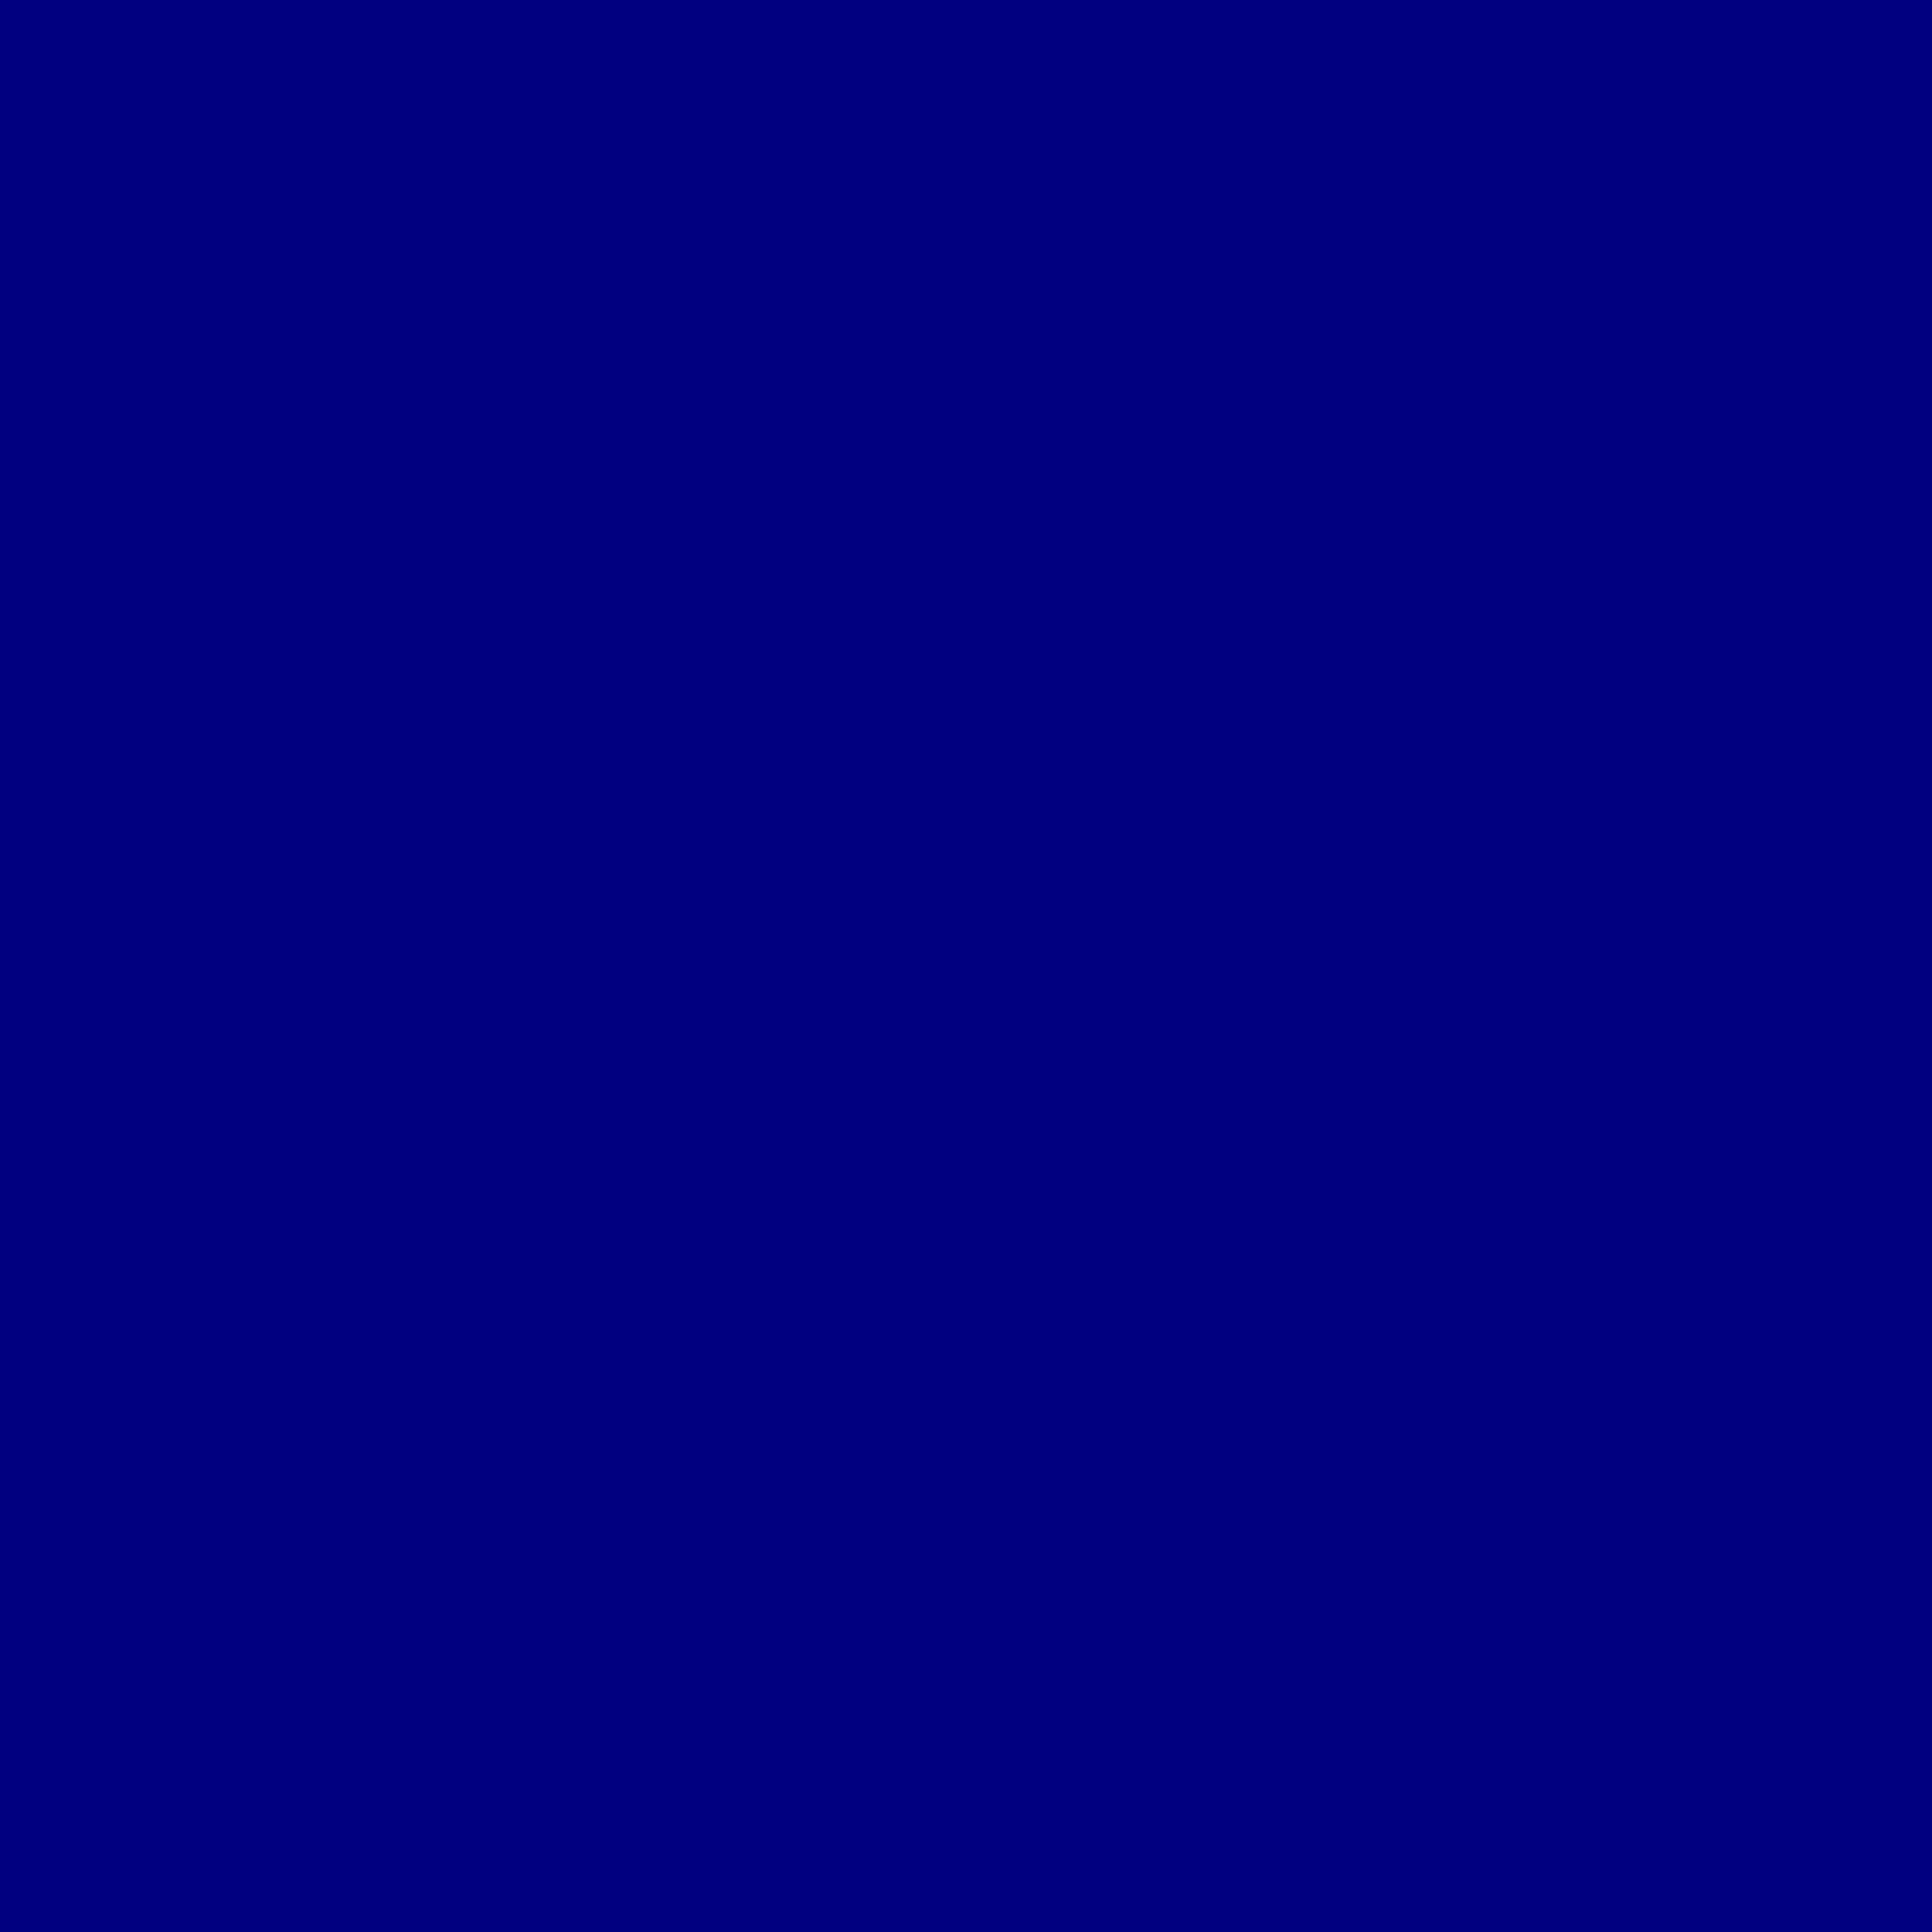 2732x2732 Navy Blue Solid Color Background